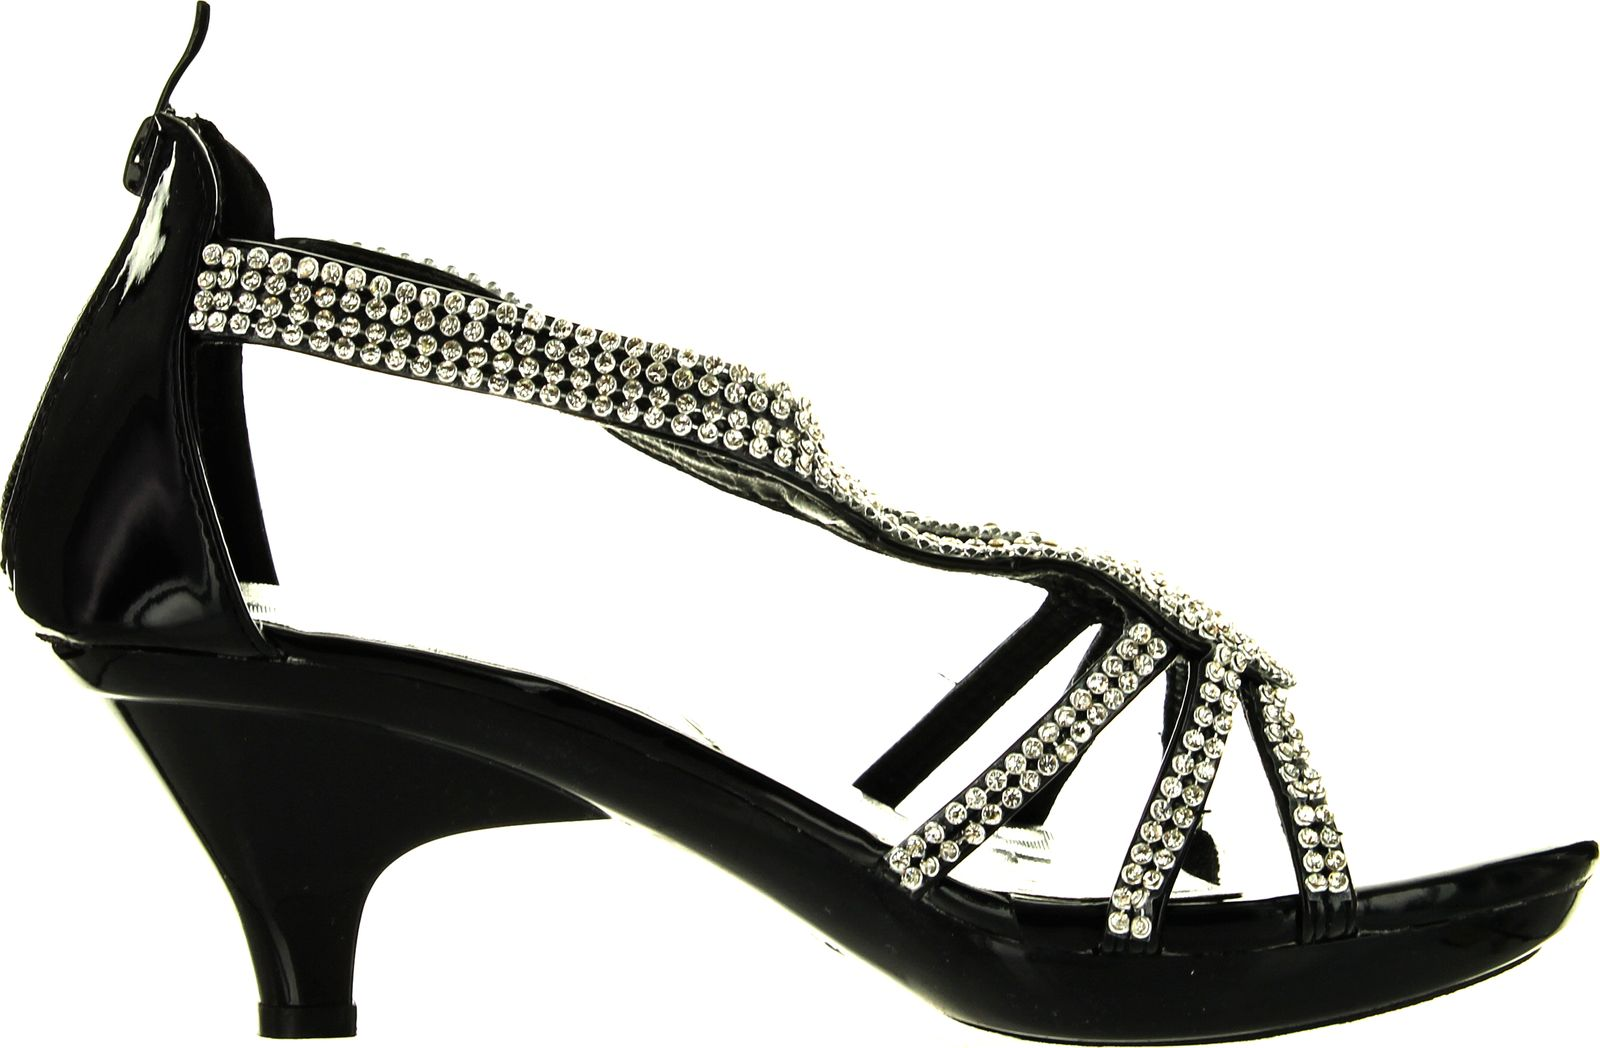 Wedding Heels With Rhinestones: Delicacy Women Dress Sandals Rhinestone Platform Wedding